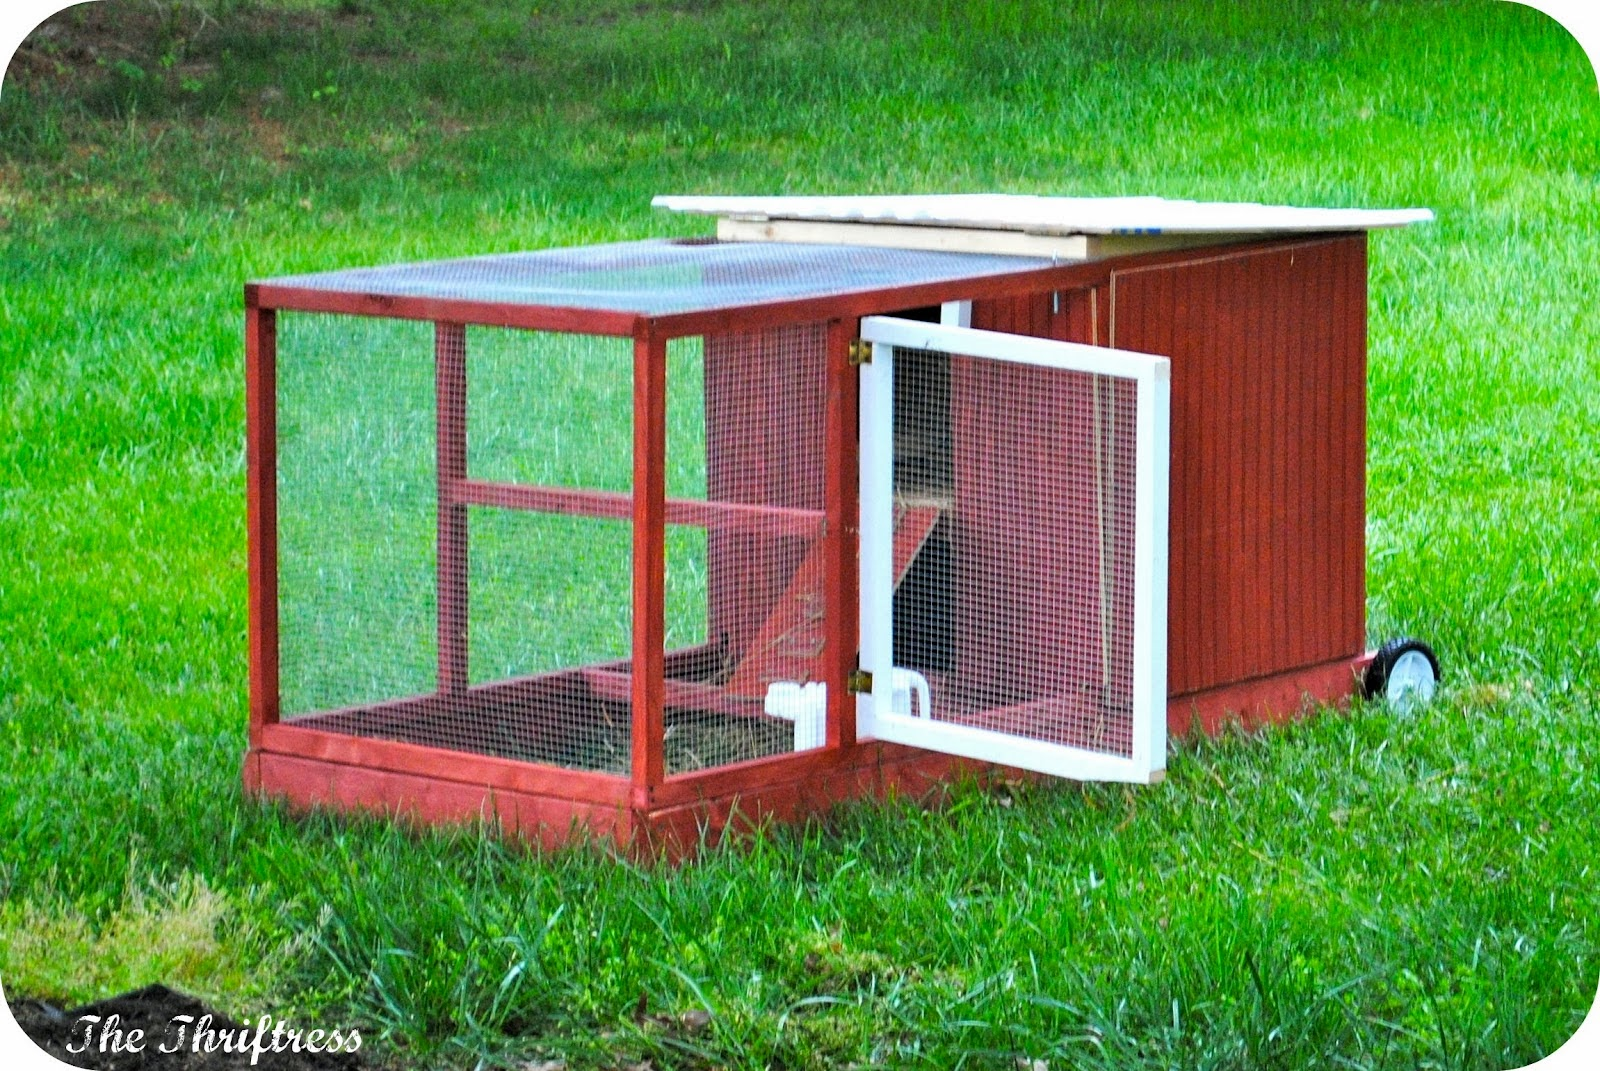 Backyard chicken house chicken coops for backyard flocks for Chicken coop size for 6 chickens